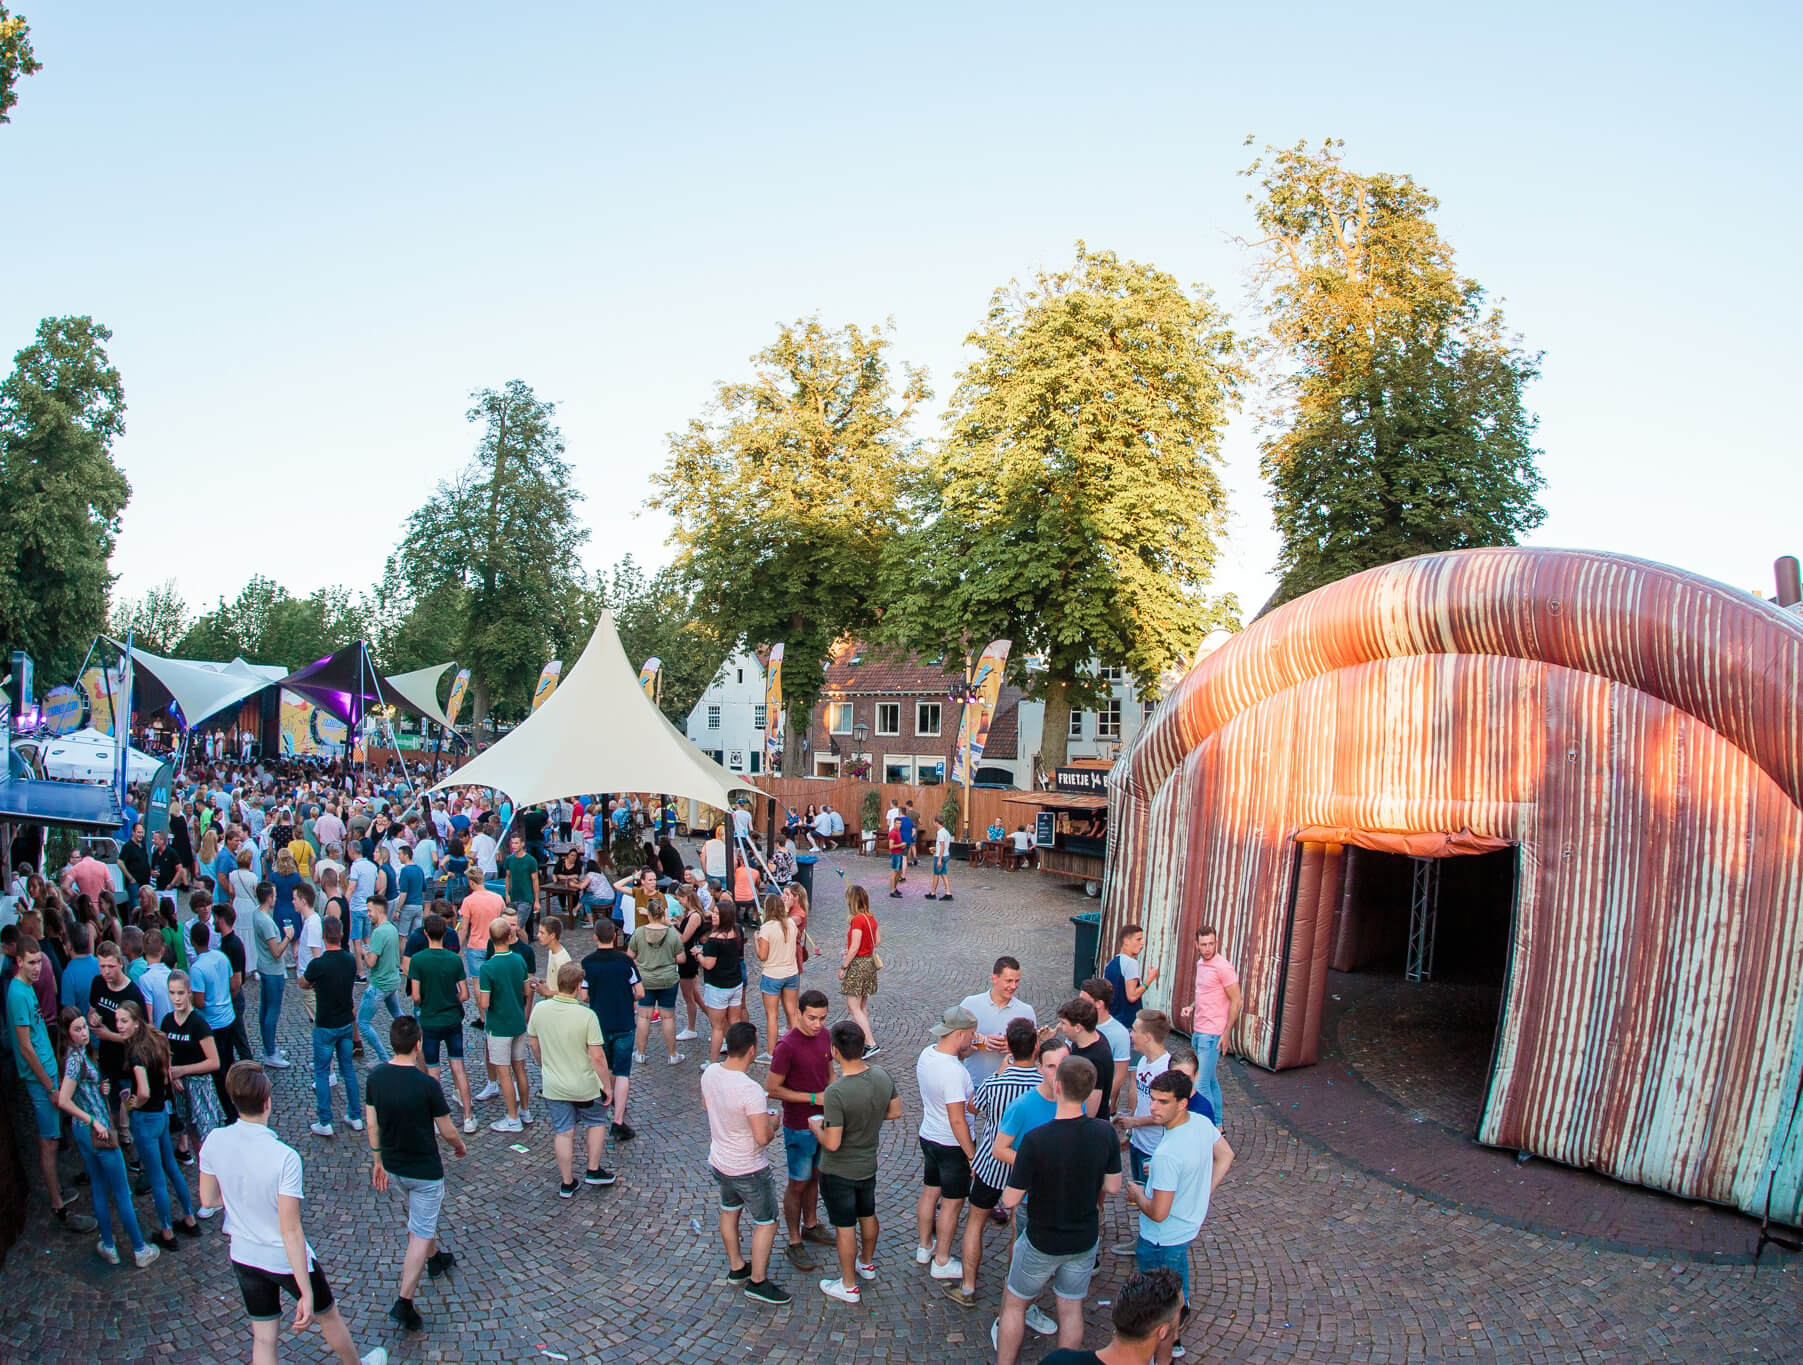 oude roestige feest-tent